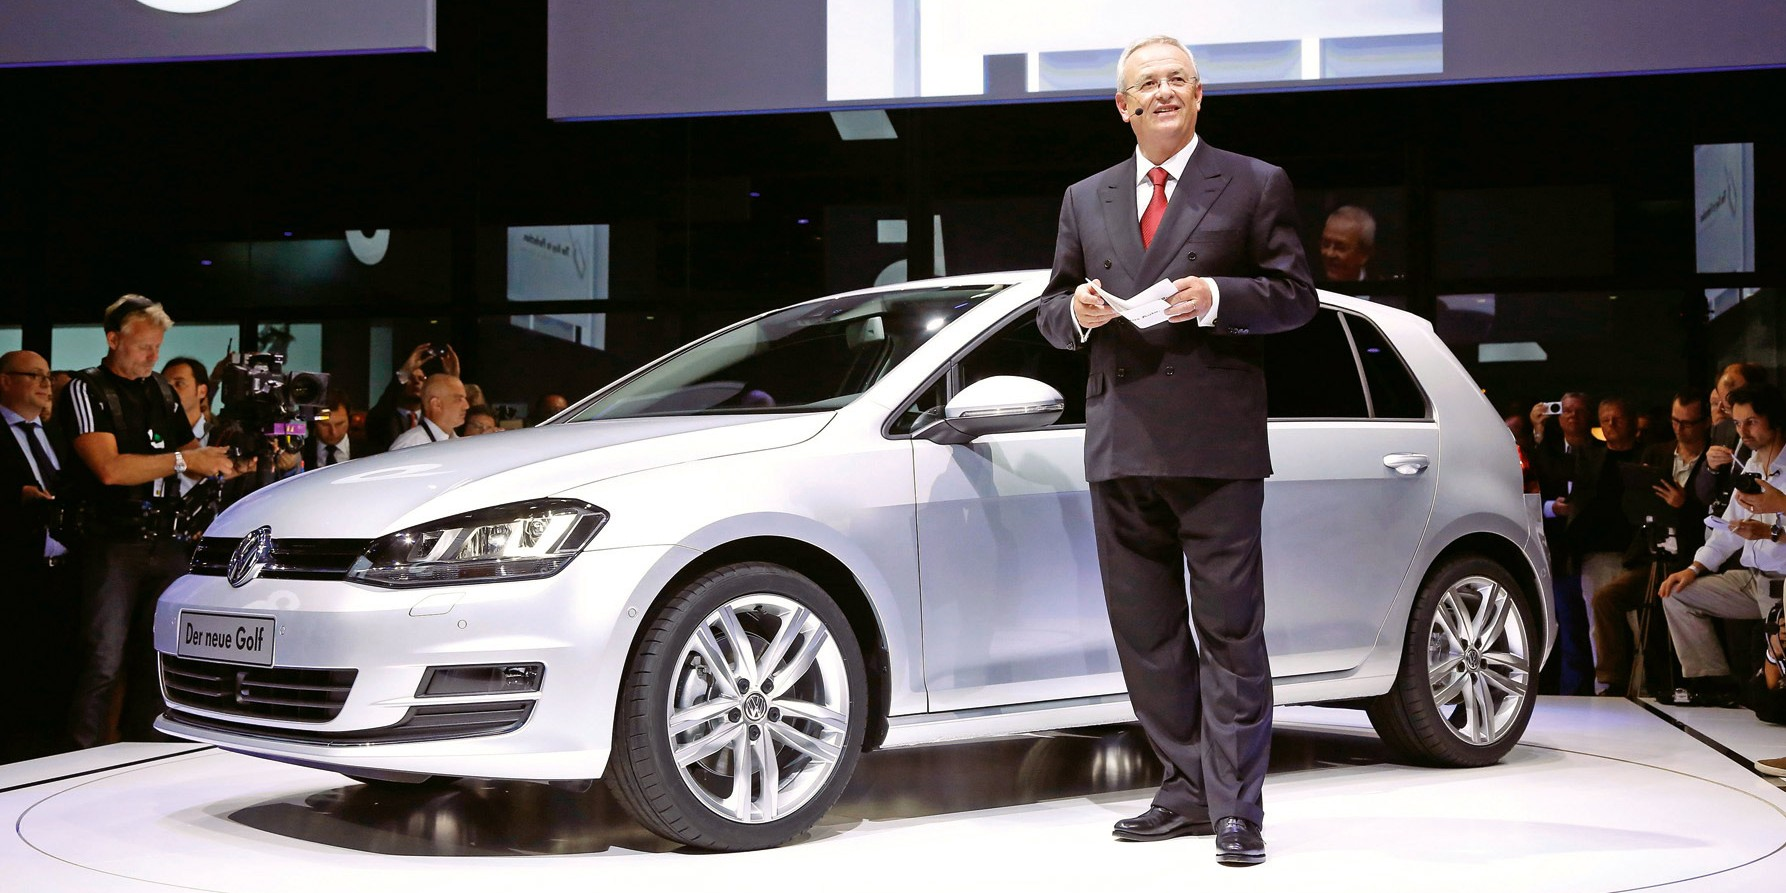 golf 7 launch e1346946466689